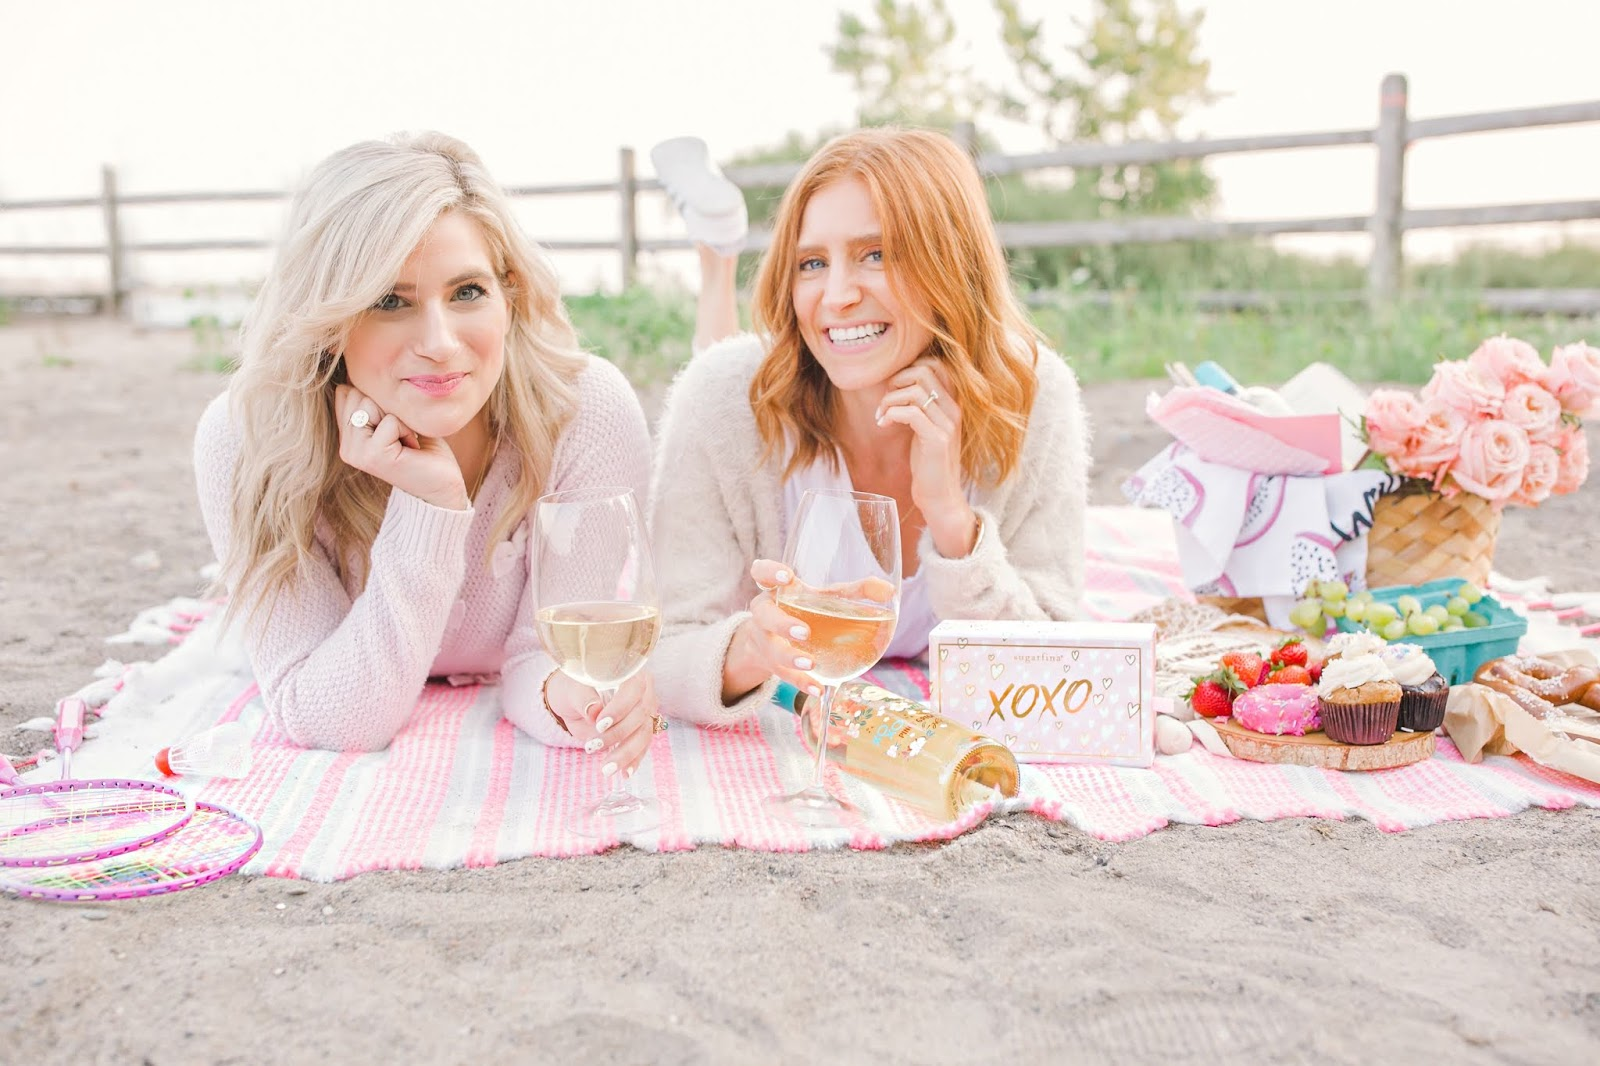 How to Have the Perfect Self-Care Day with XOXO Wines - Colourful, pink beach picnic with bestie